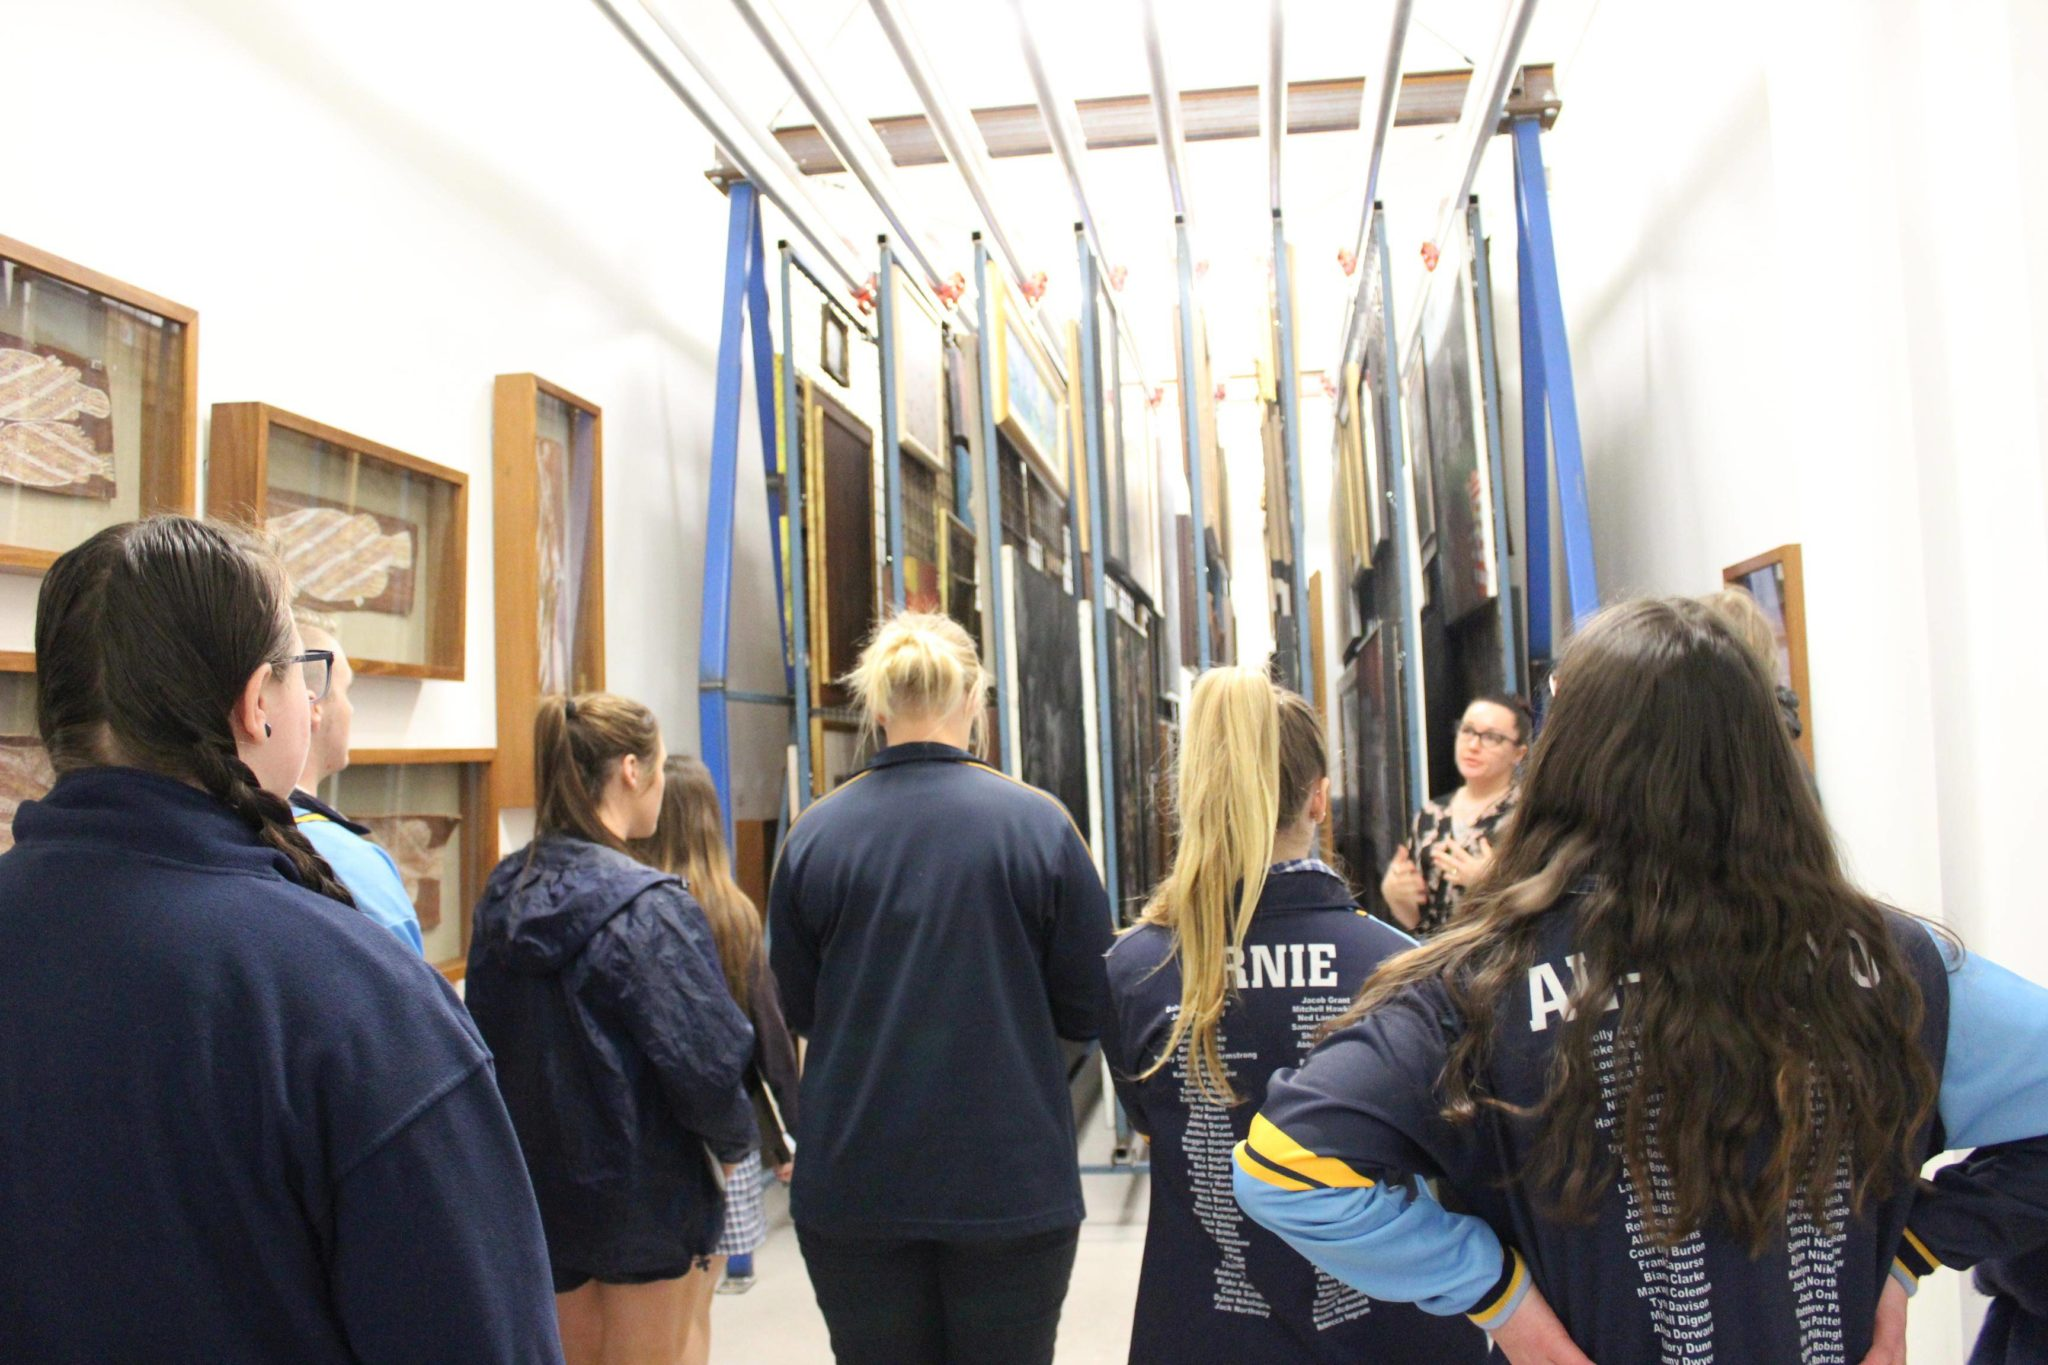 Image credit: Latrobe Regional Gallery's Education and Public Programs Officer Nicole Brindley showing students through the back of house painting storage areas.